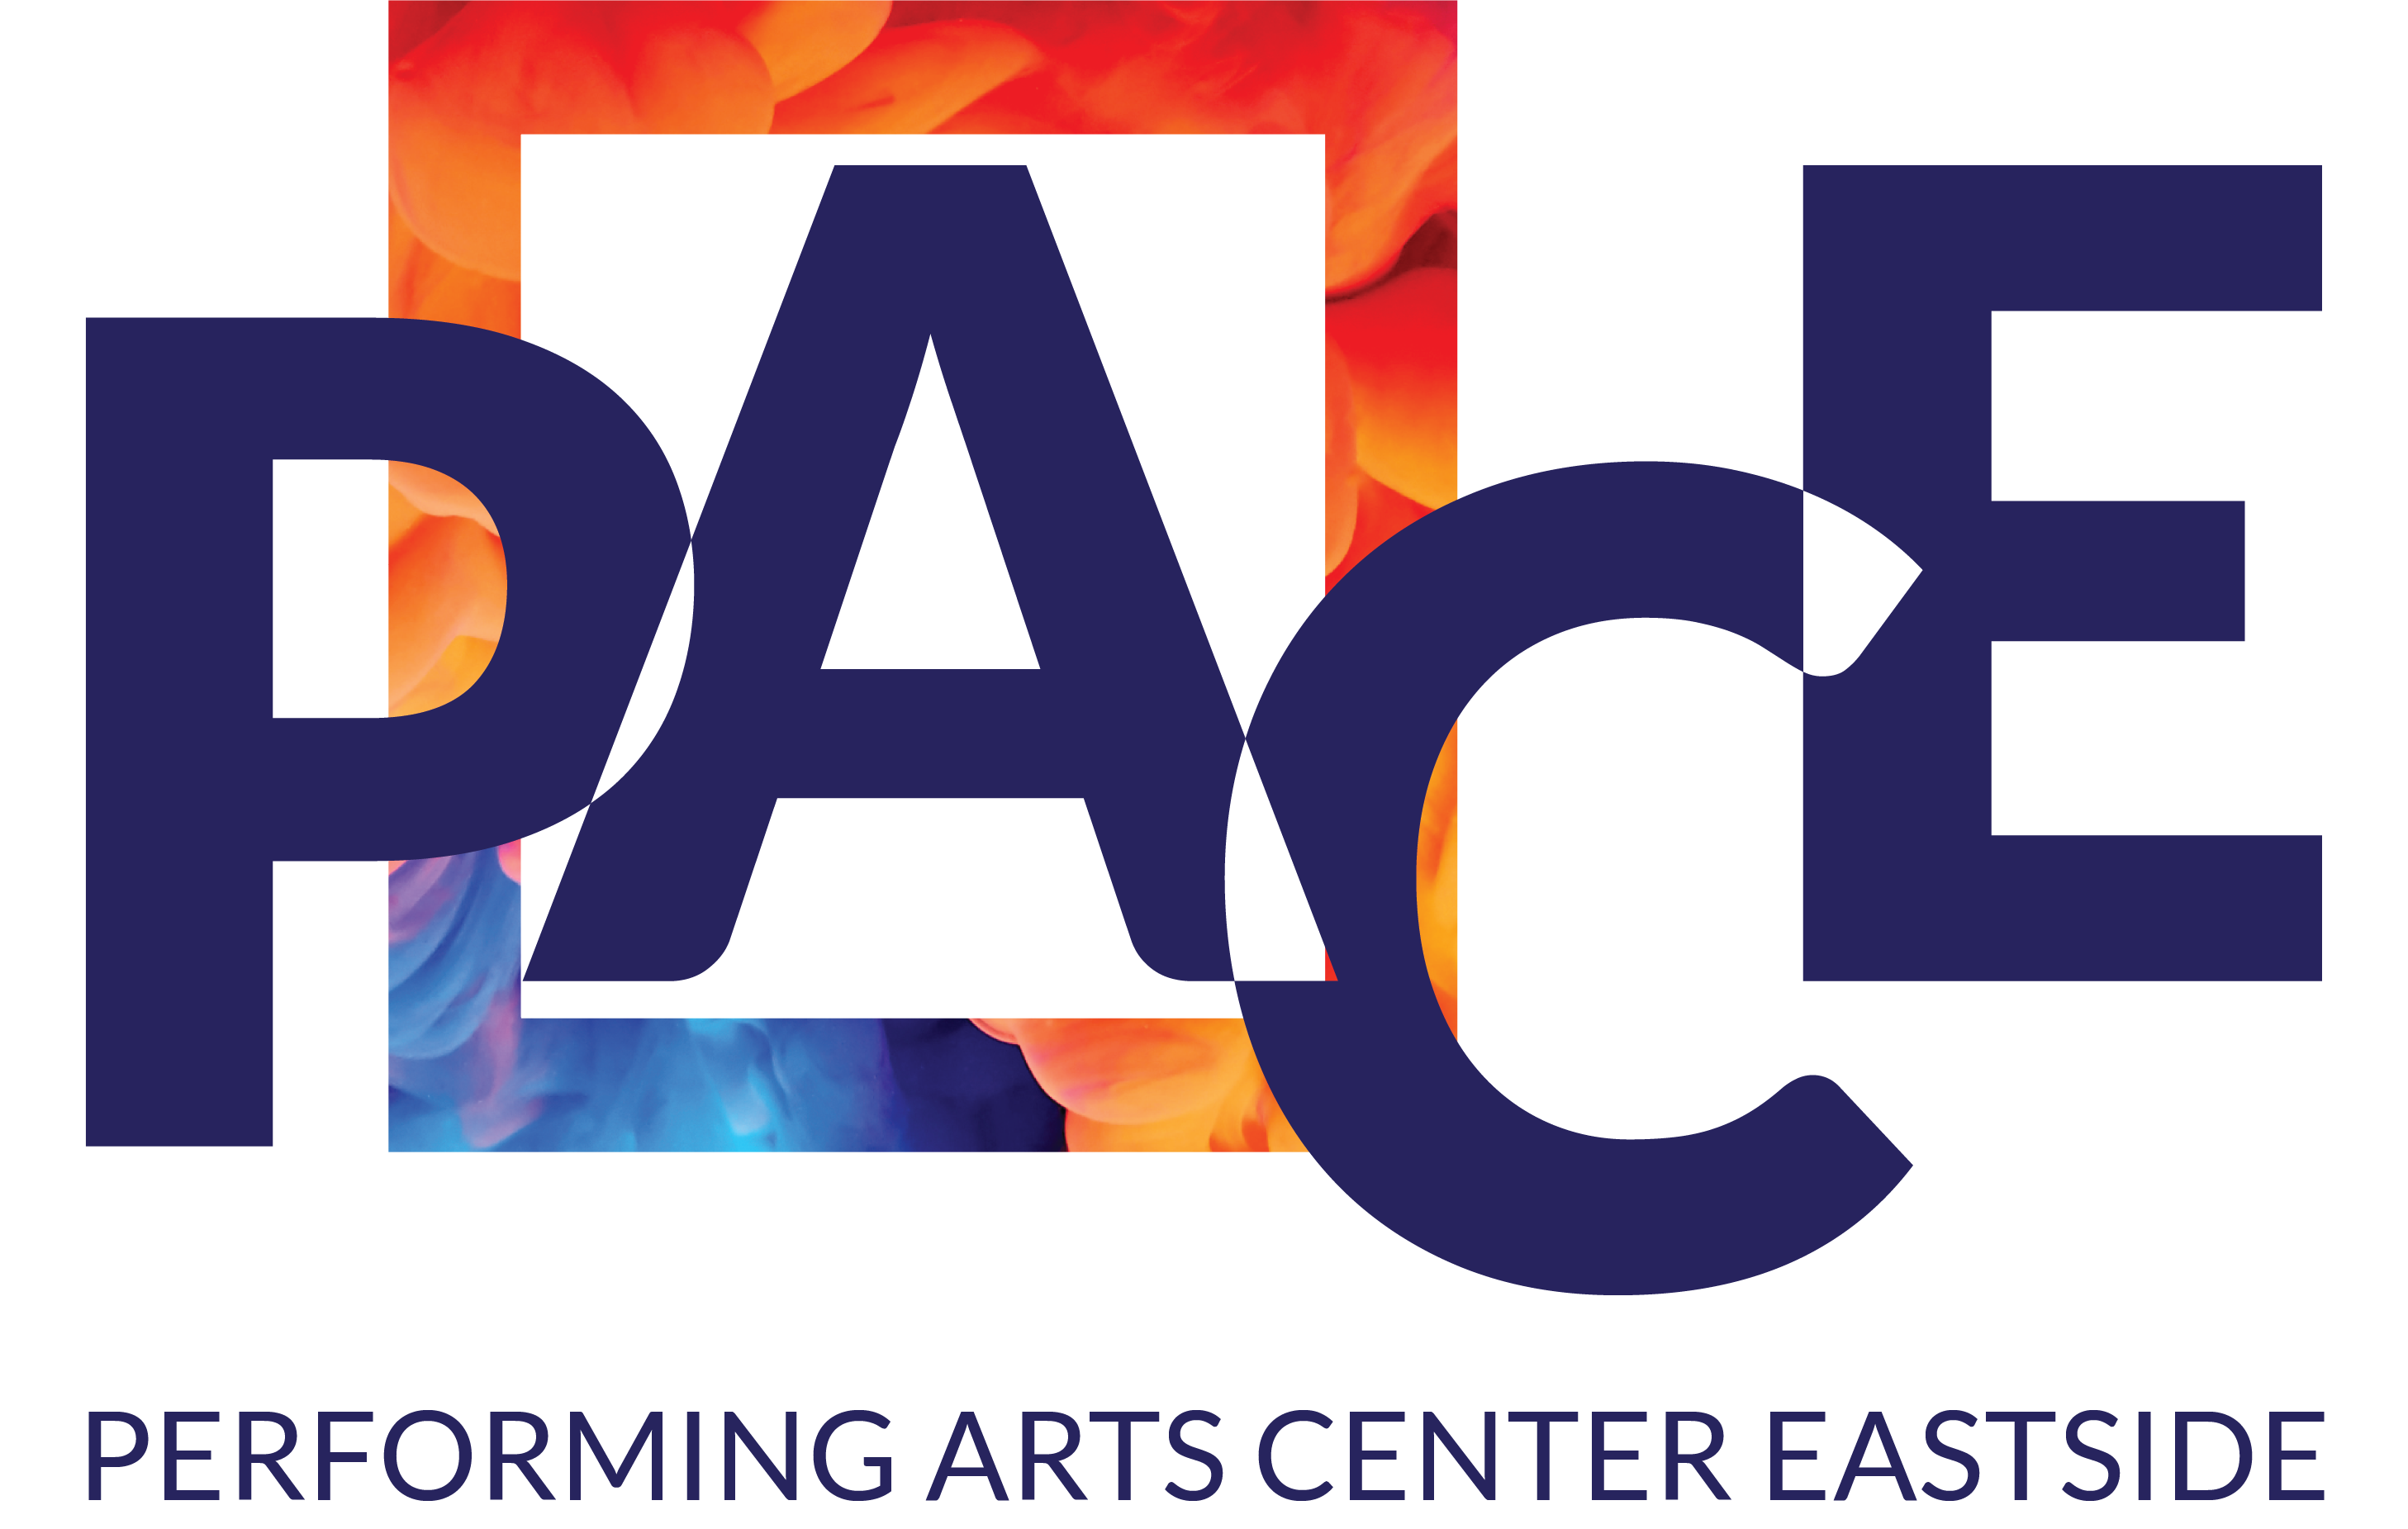 PACE - PERFORMING ARTS CENTER EASTSIDE logo